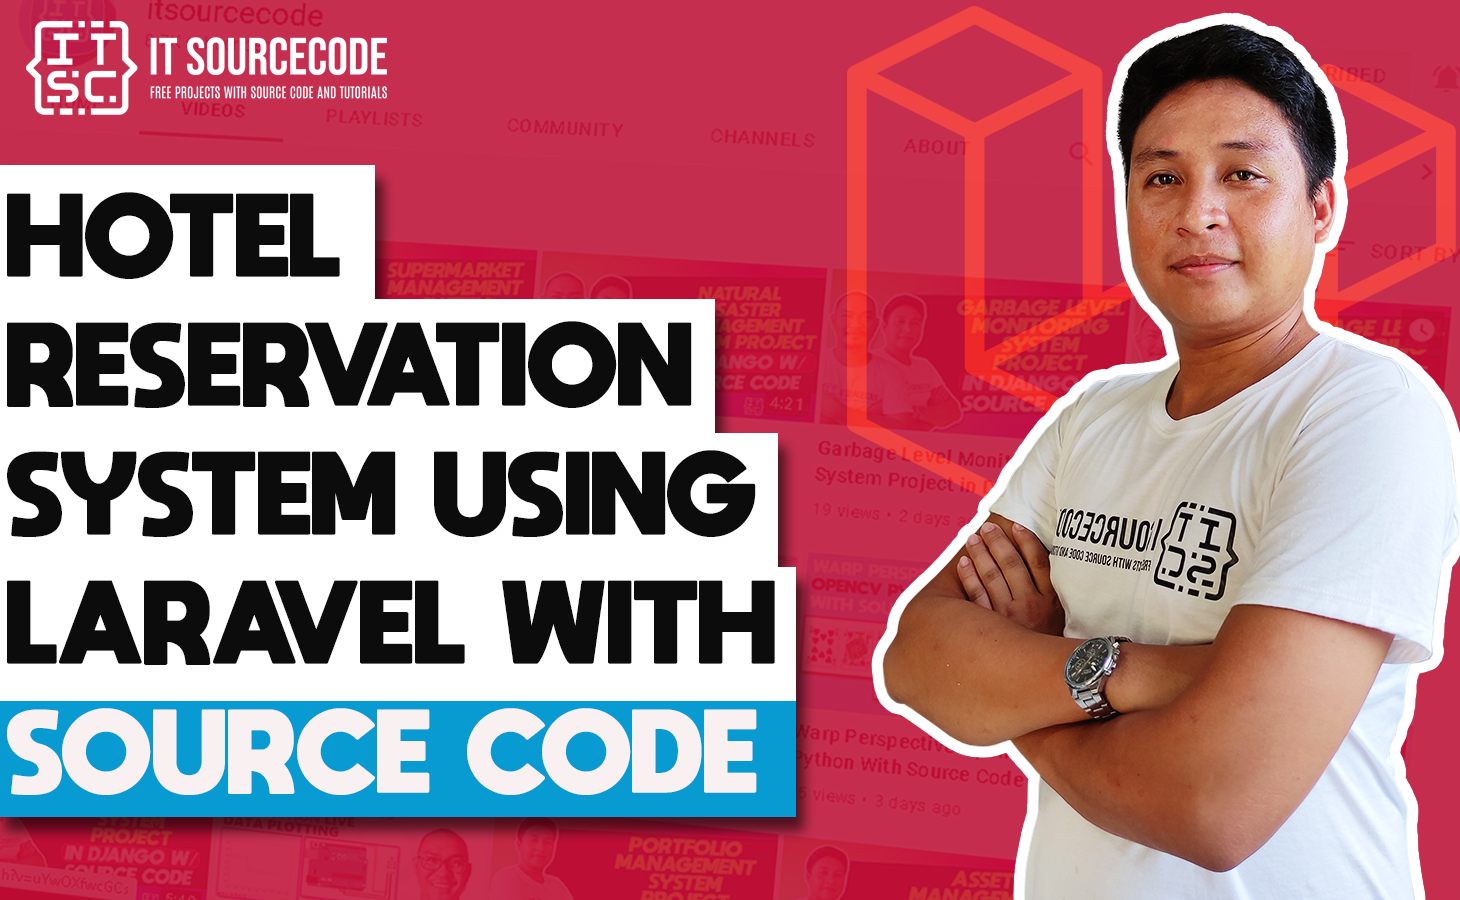 Hotel Reservation System using Laravel With Source Code